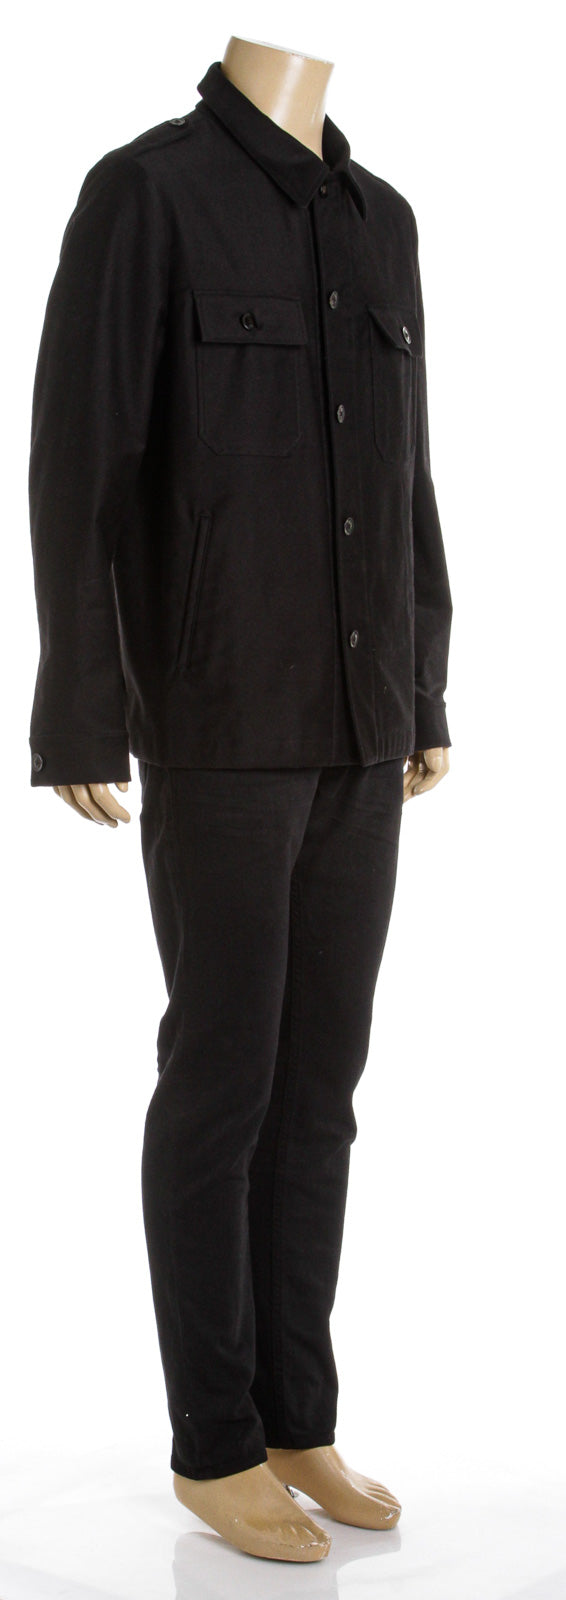 Tom Ford Black Cotton Car Coat (Size XL)